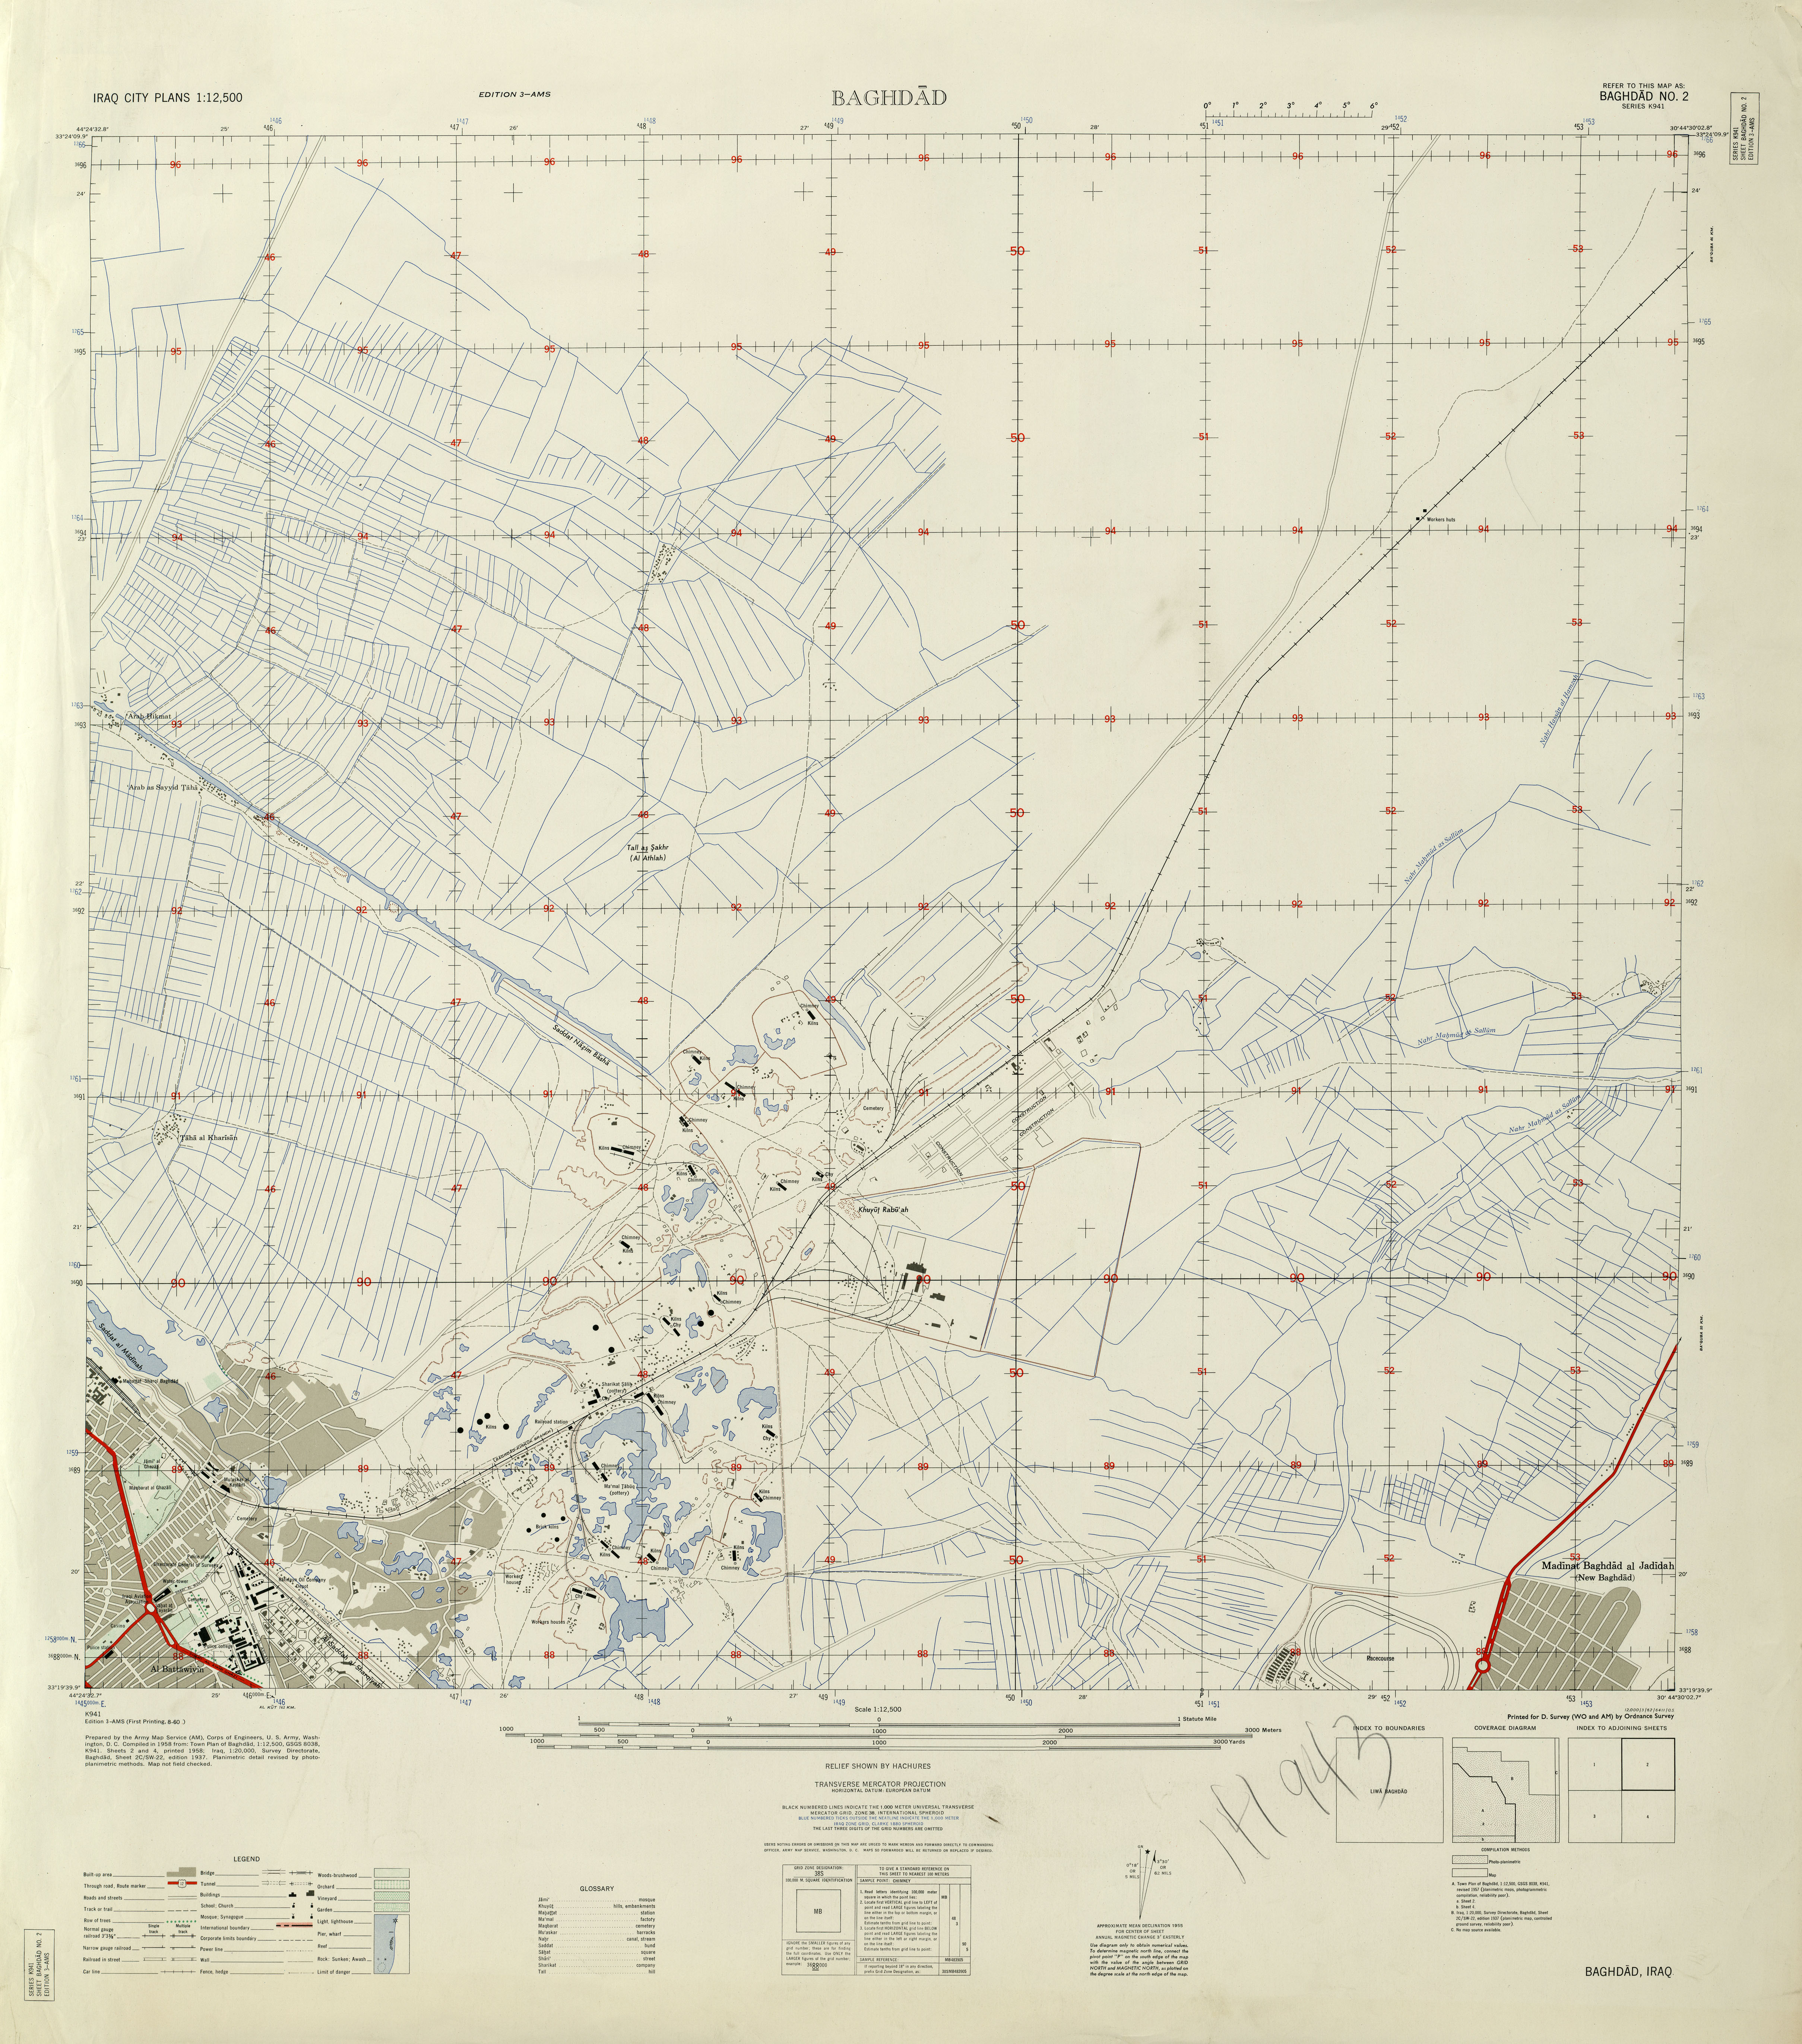 World City Maps - Perry-Castañeda Map Collection - UT Library Online